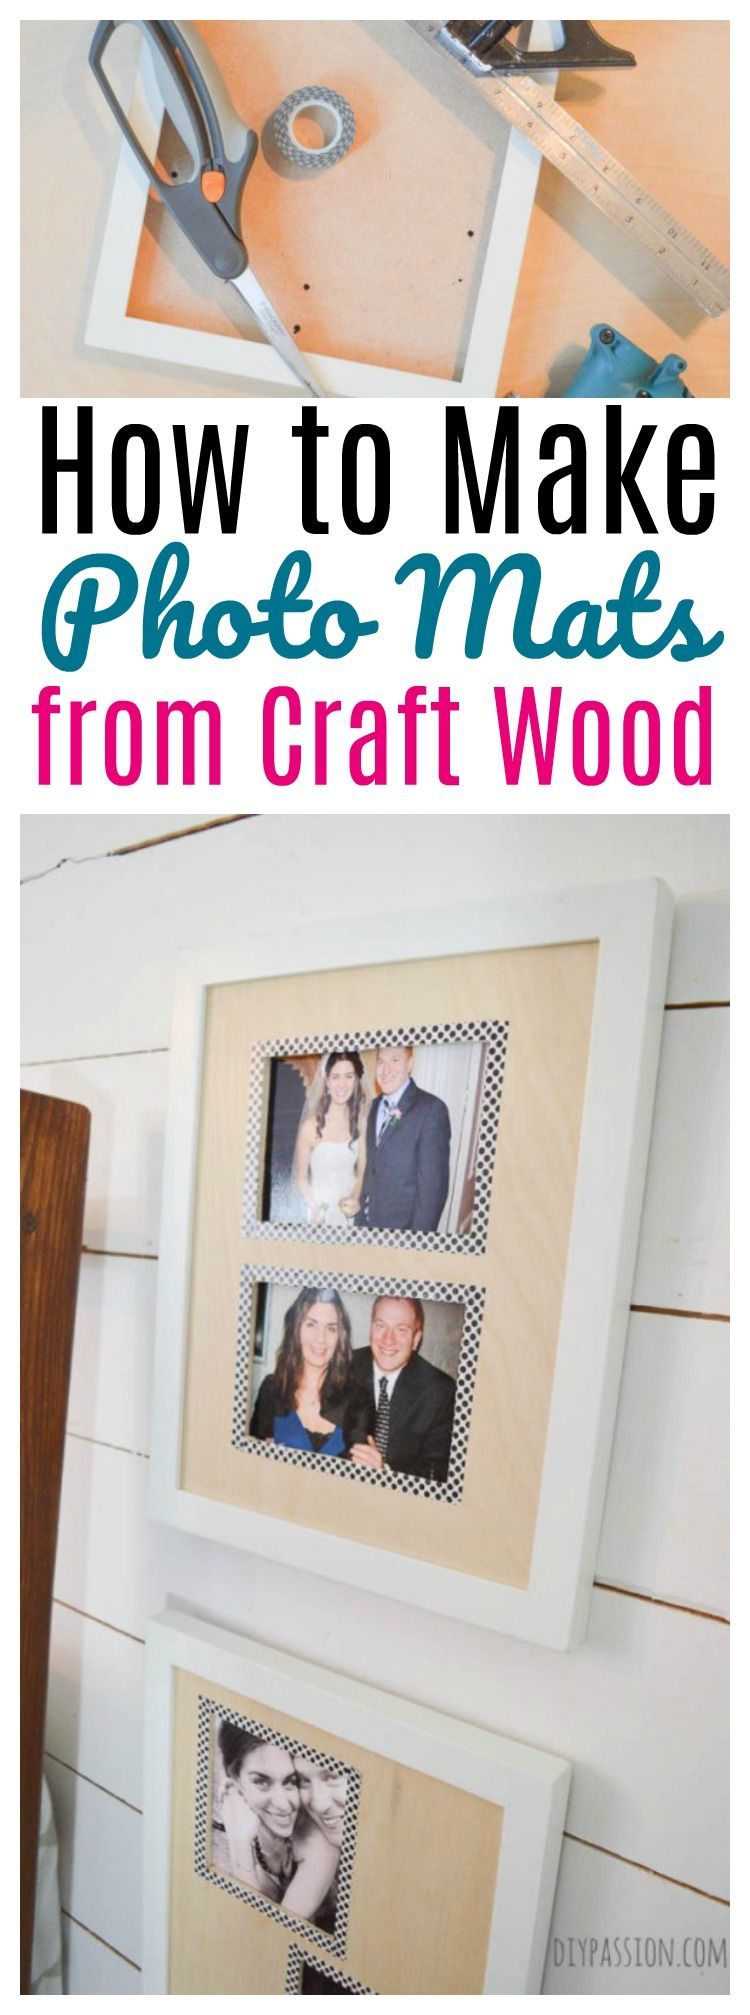 Craft Wood Photo Mats | Simple diy, DIY tutorial and Upcycle